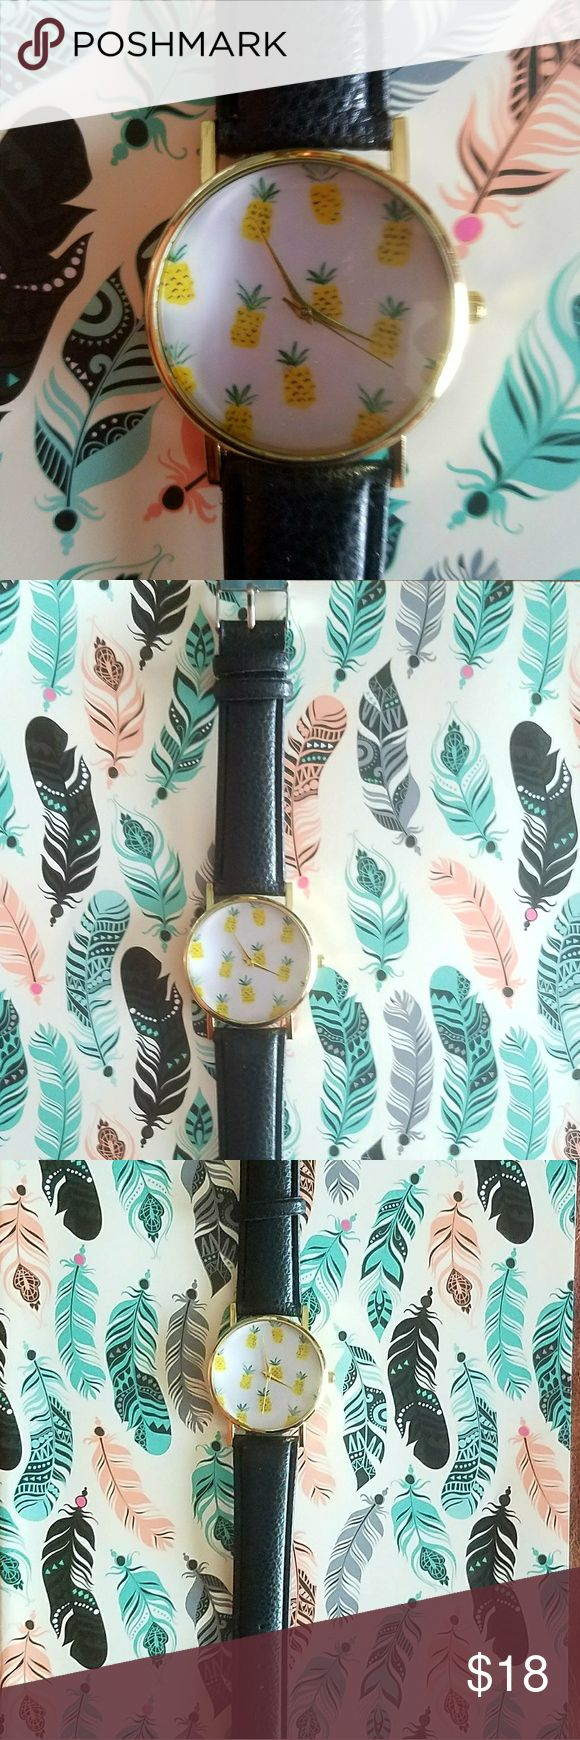 NWT! PINEAPPLE WATCH🍍🍍 WITH LEATHER BAND🍍🍍 NWT Black leather watch band with a stainless steel watch face. Covered with yellow pineapples!!🍍🍍🍍 Perfect for everyday wear! Accessories Watches